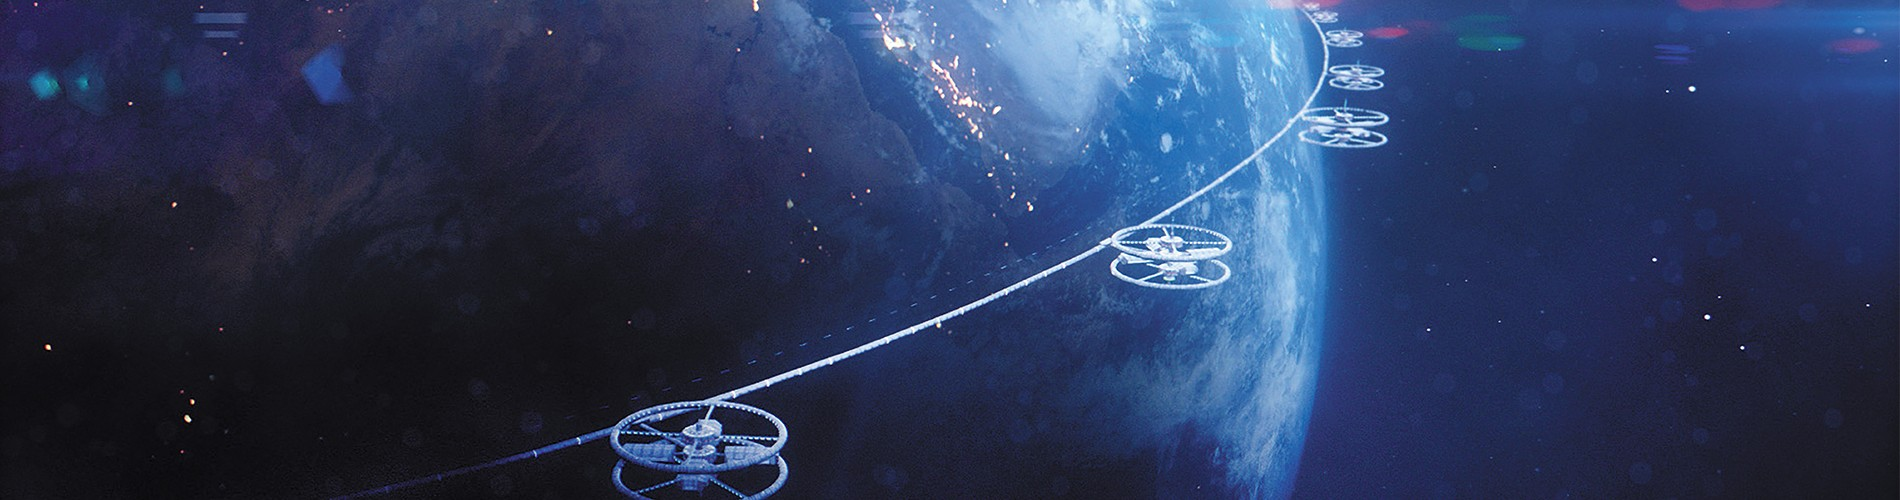 SpaceWay as the Only Way of Civilization Development